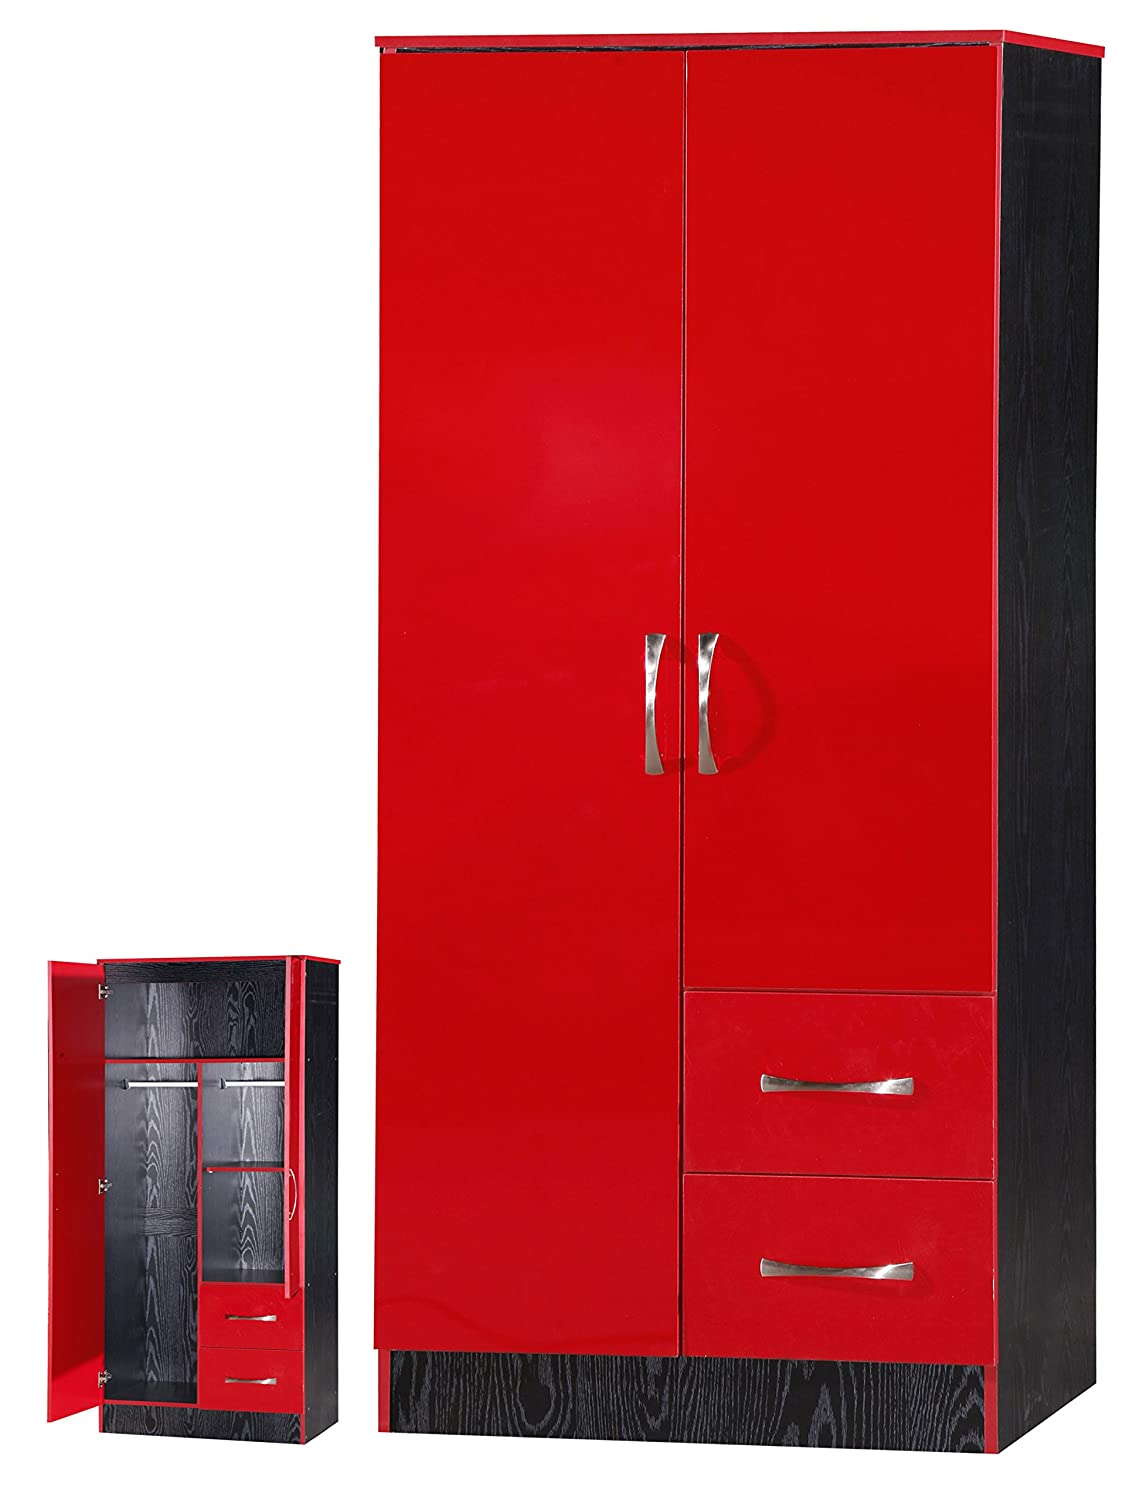 MARINA 2 DOOR DOUBLE COMBINATION WARDROBE ULTRA HIGH GLOSS QUALITY ...